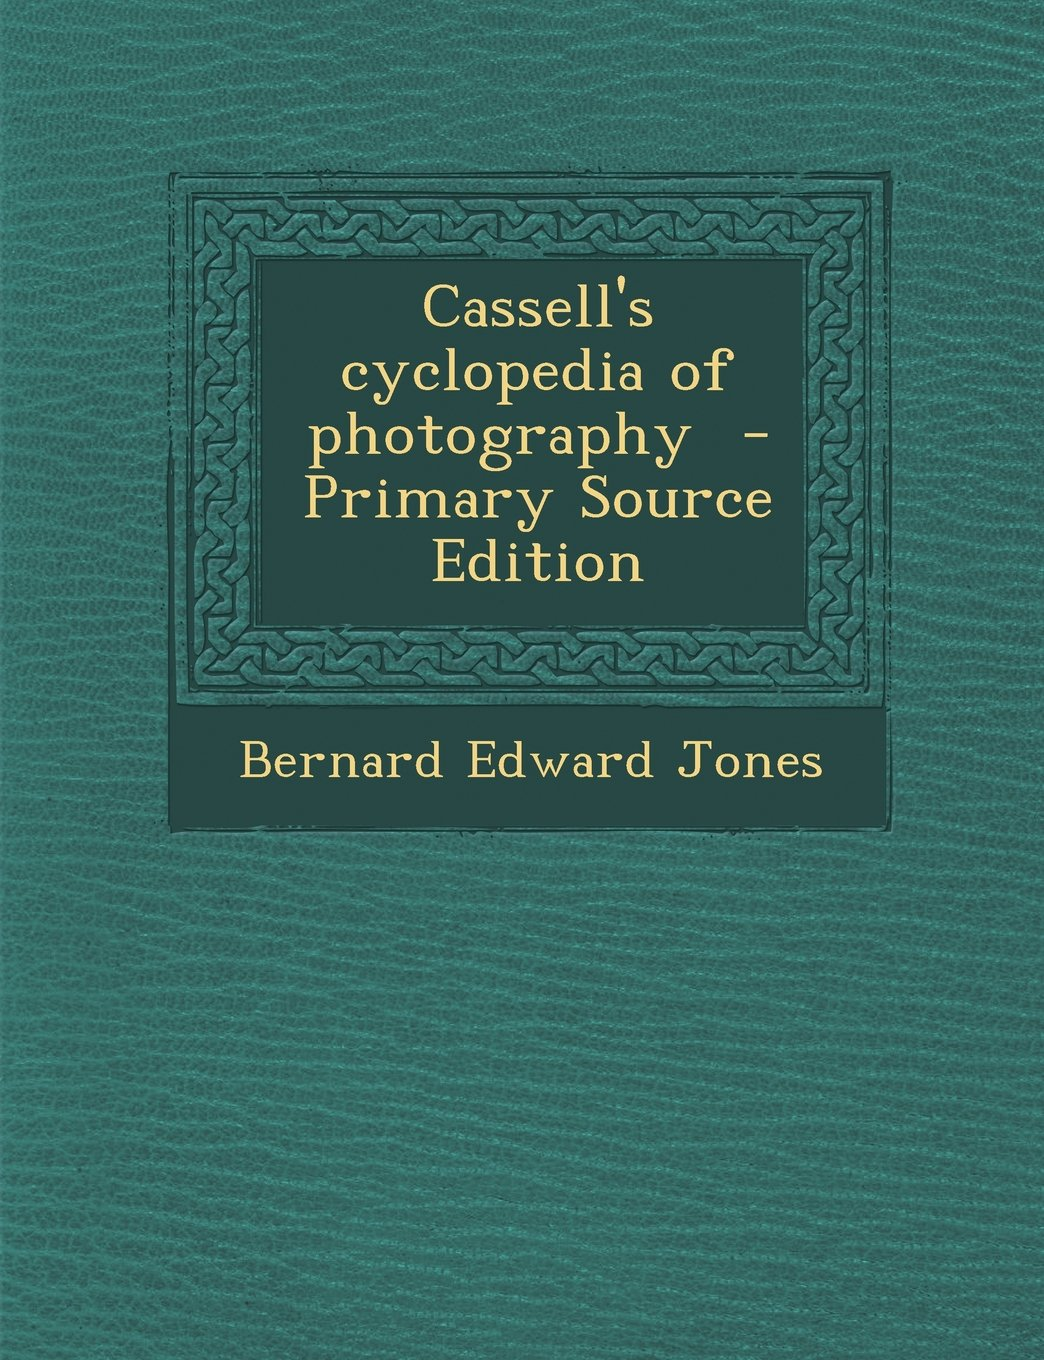 Cassell's cyclopedia of photography PDF